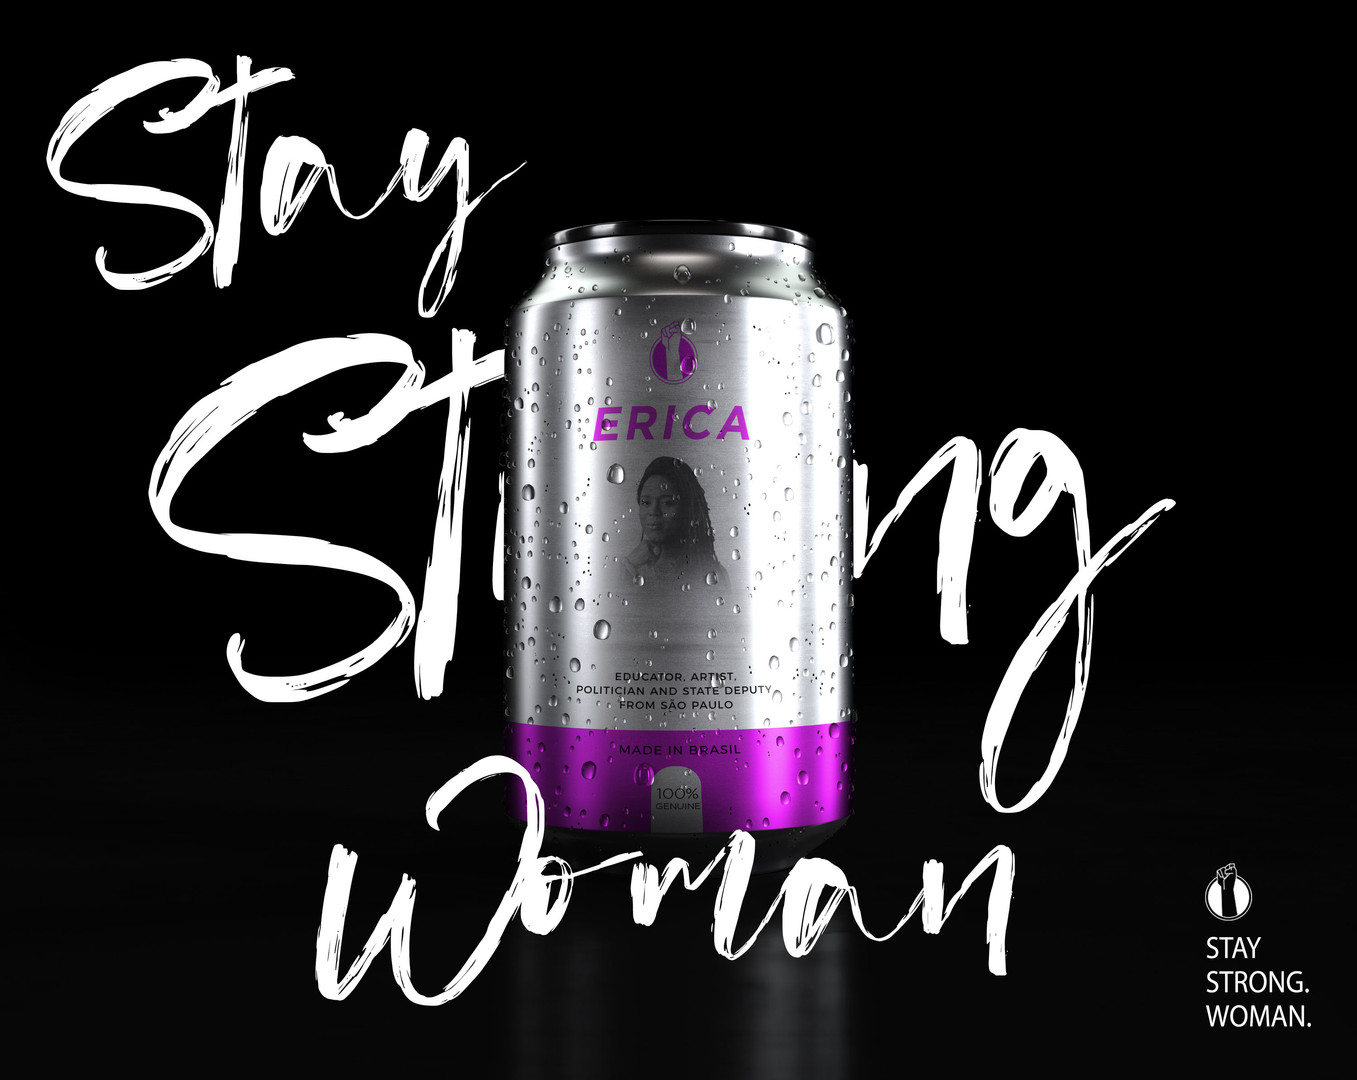 Stay_Strong_Woman_3.jpg